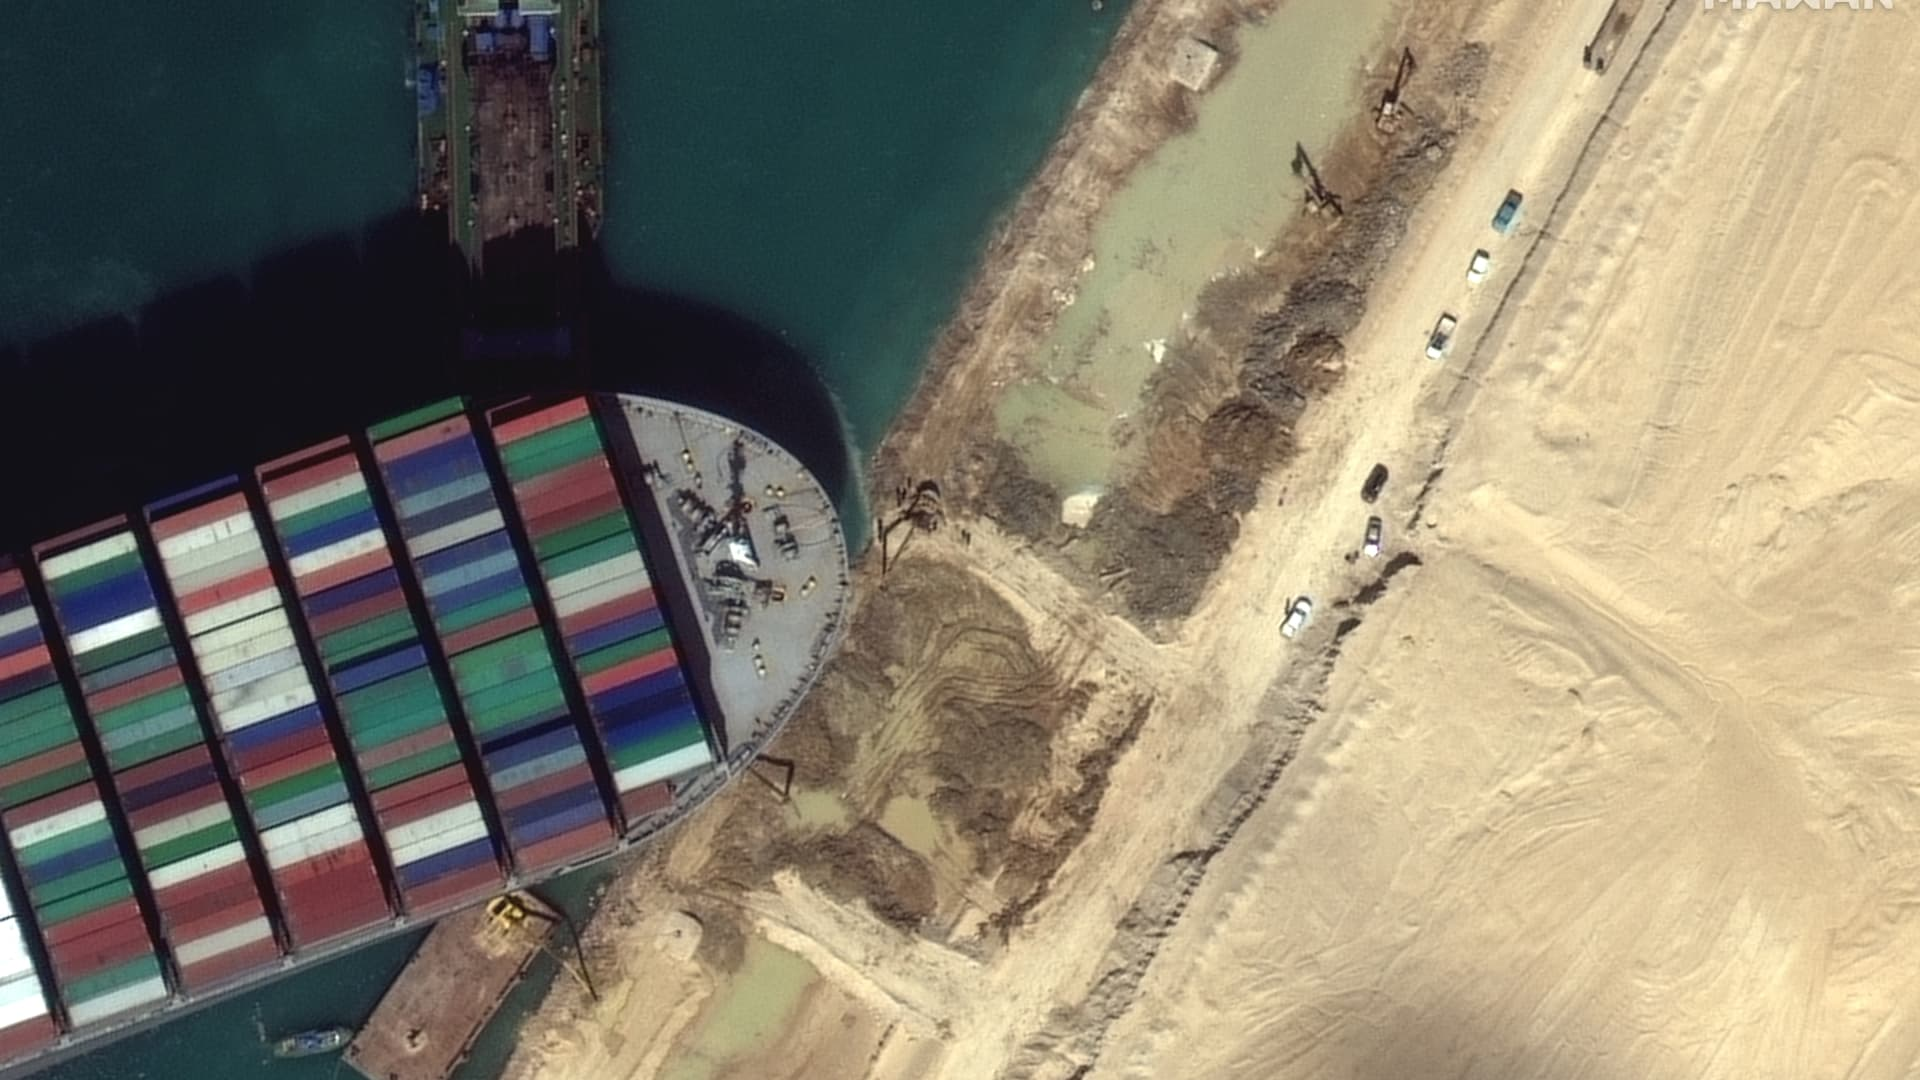 Close up imagery of the dredging operations underway around the Ever Given in the Suez Canal, captured by the company's WorldView-3 satellite on Saturday, March 27, 2021.